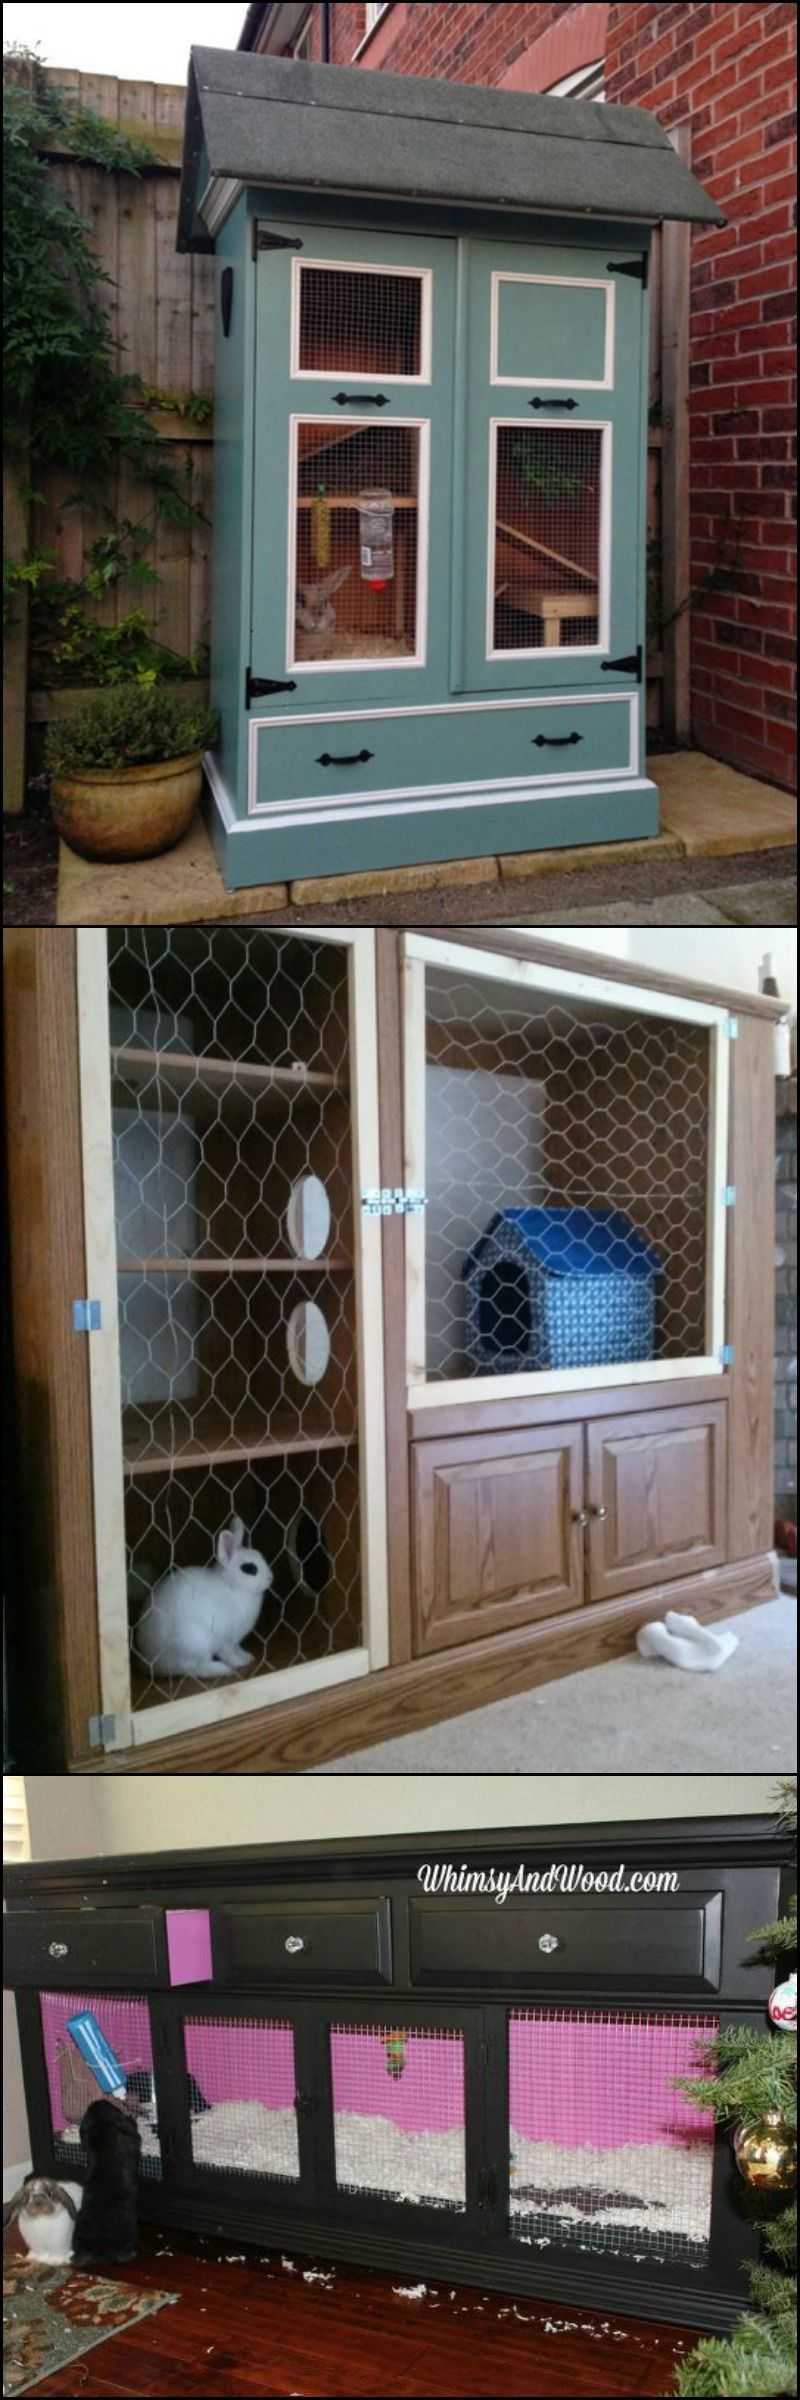 rabbit hutch ideas made from repurposed furniture. Black Bedroom Furniture Sets. Home Design Ideas